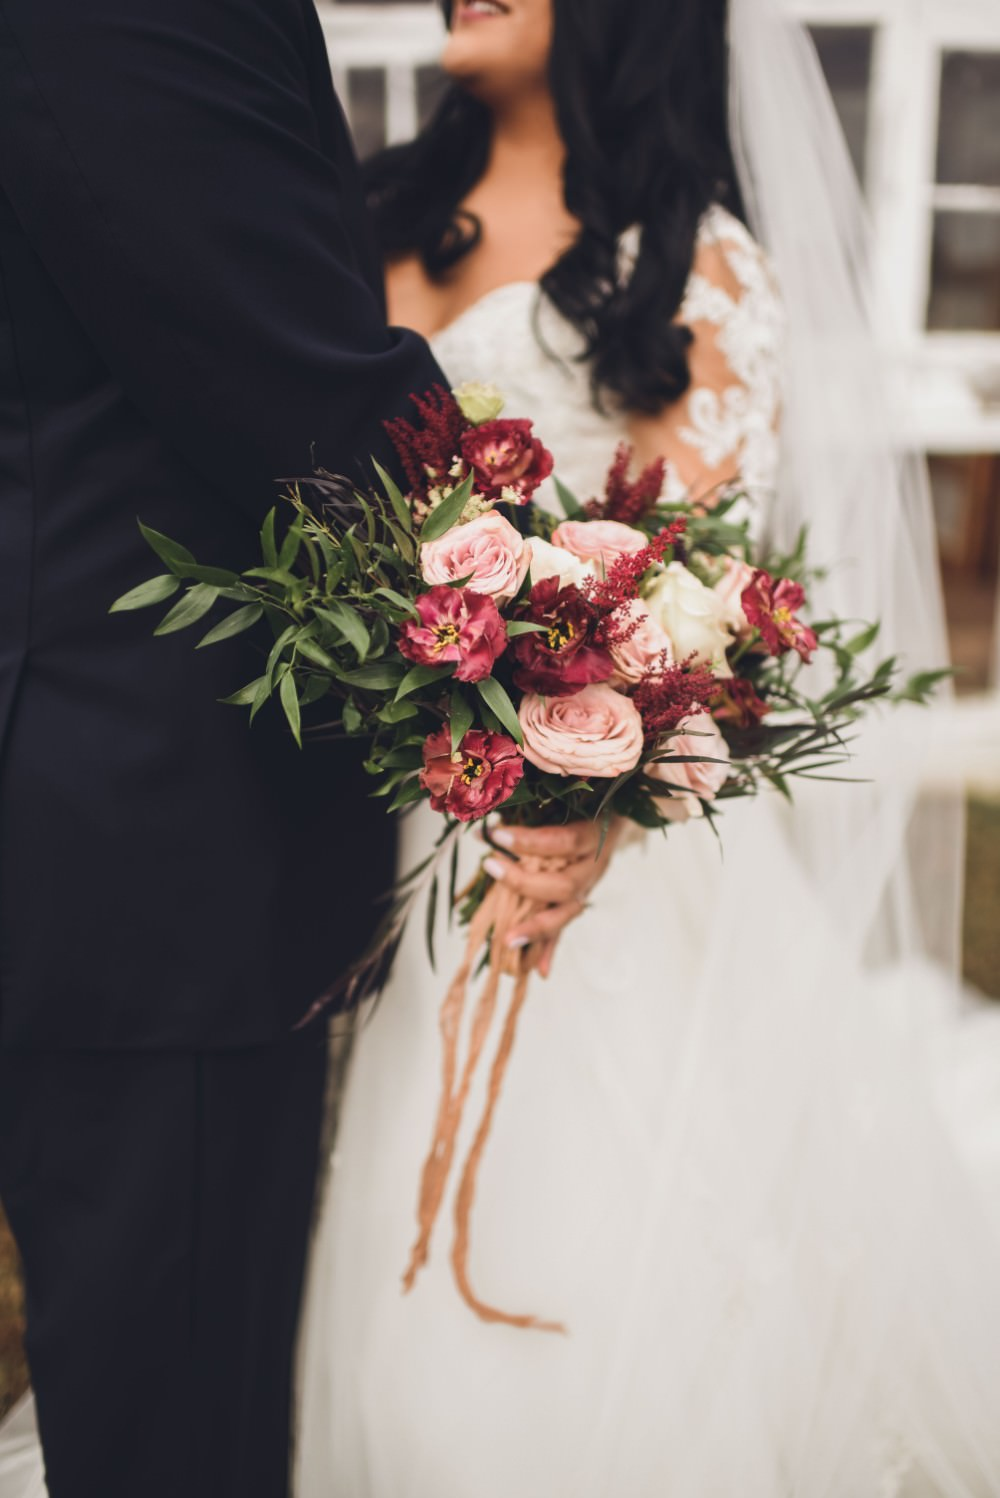 Bouquet Flowers Pink Red Rose Greenery Foliage Bride Bridal Kindred Barn Wedding The Kindred Collective